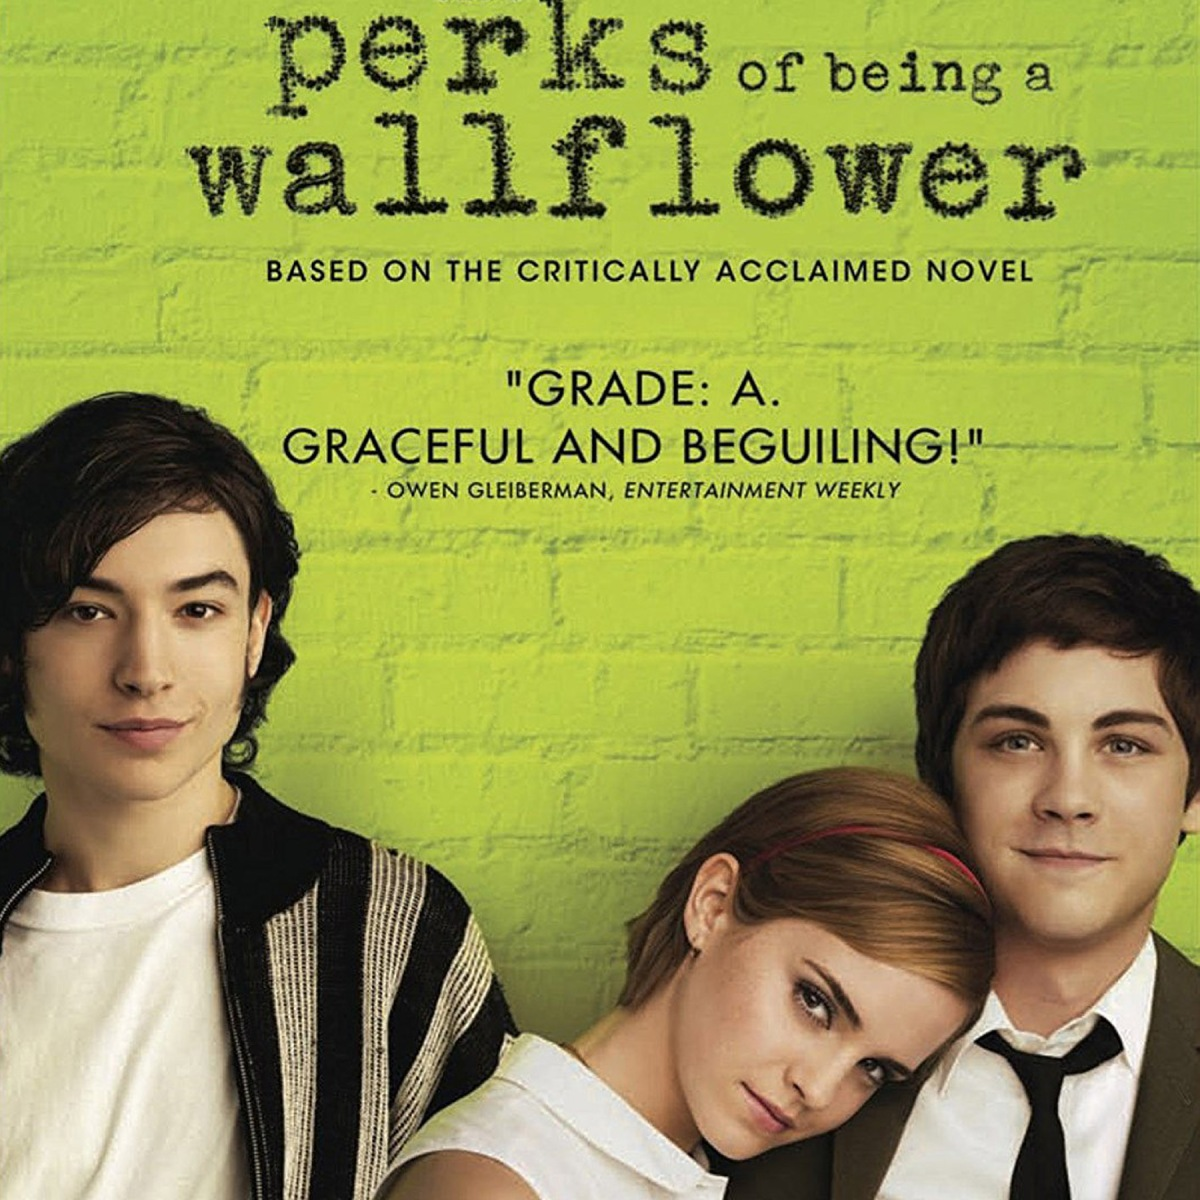 [Review Film] The Perks of Being a Wallflower (2012), Drama Apik Tentang Perjalanan Menuju Kedewasaan